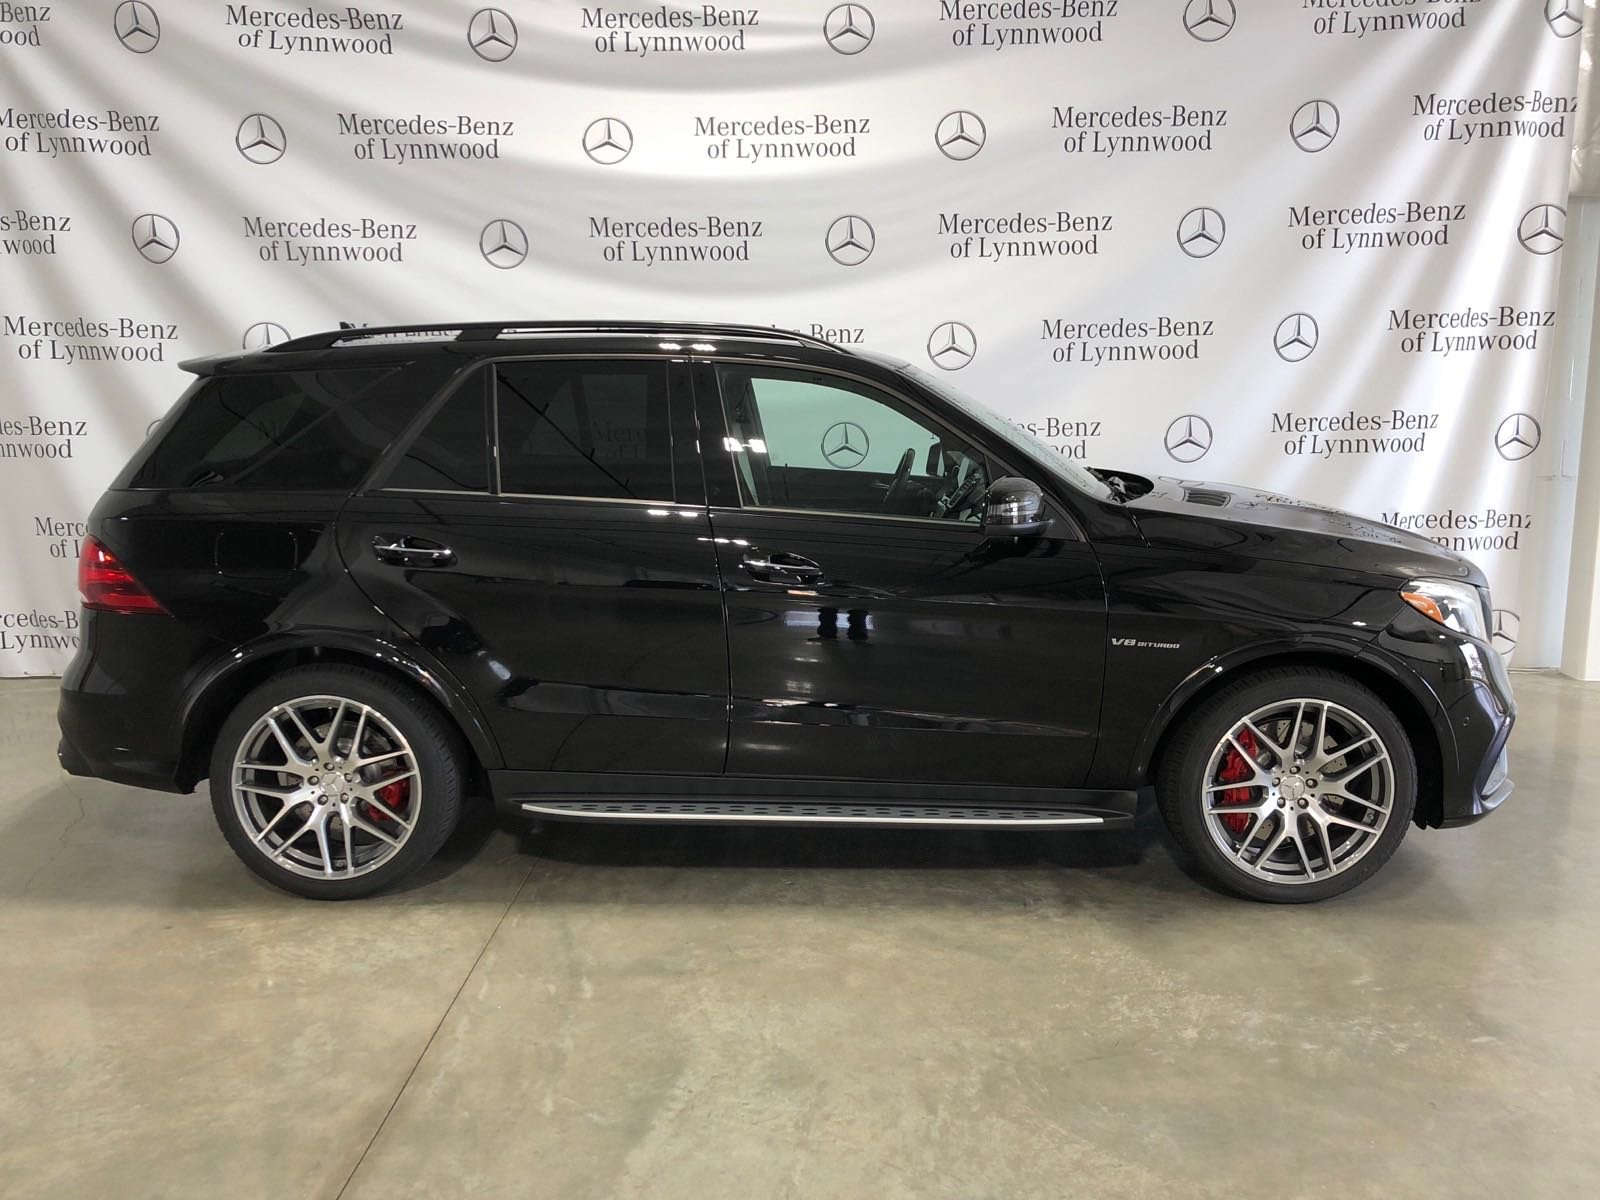 Pre Owned 2018 Mercedes Benz GLE AMG GLE 63 S 4MATIC SUV in